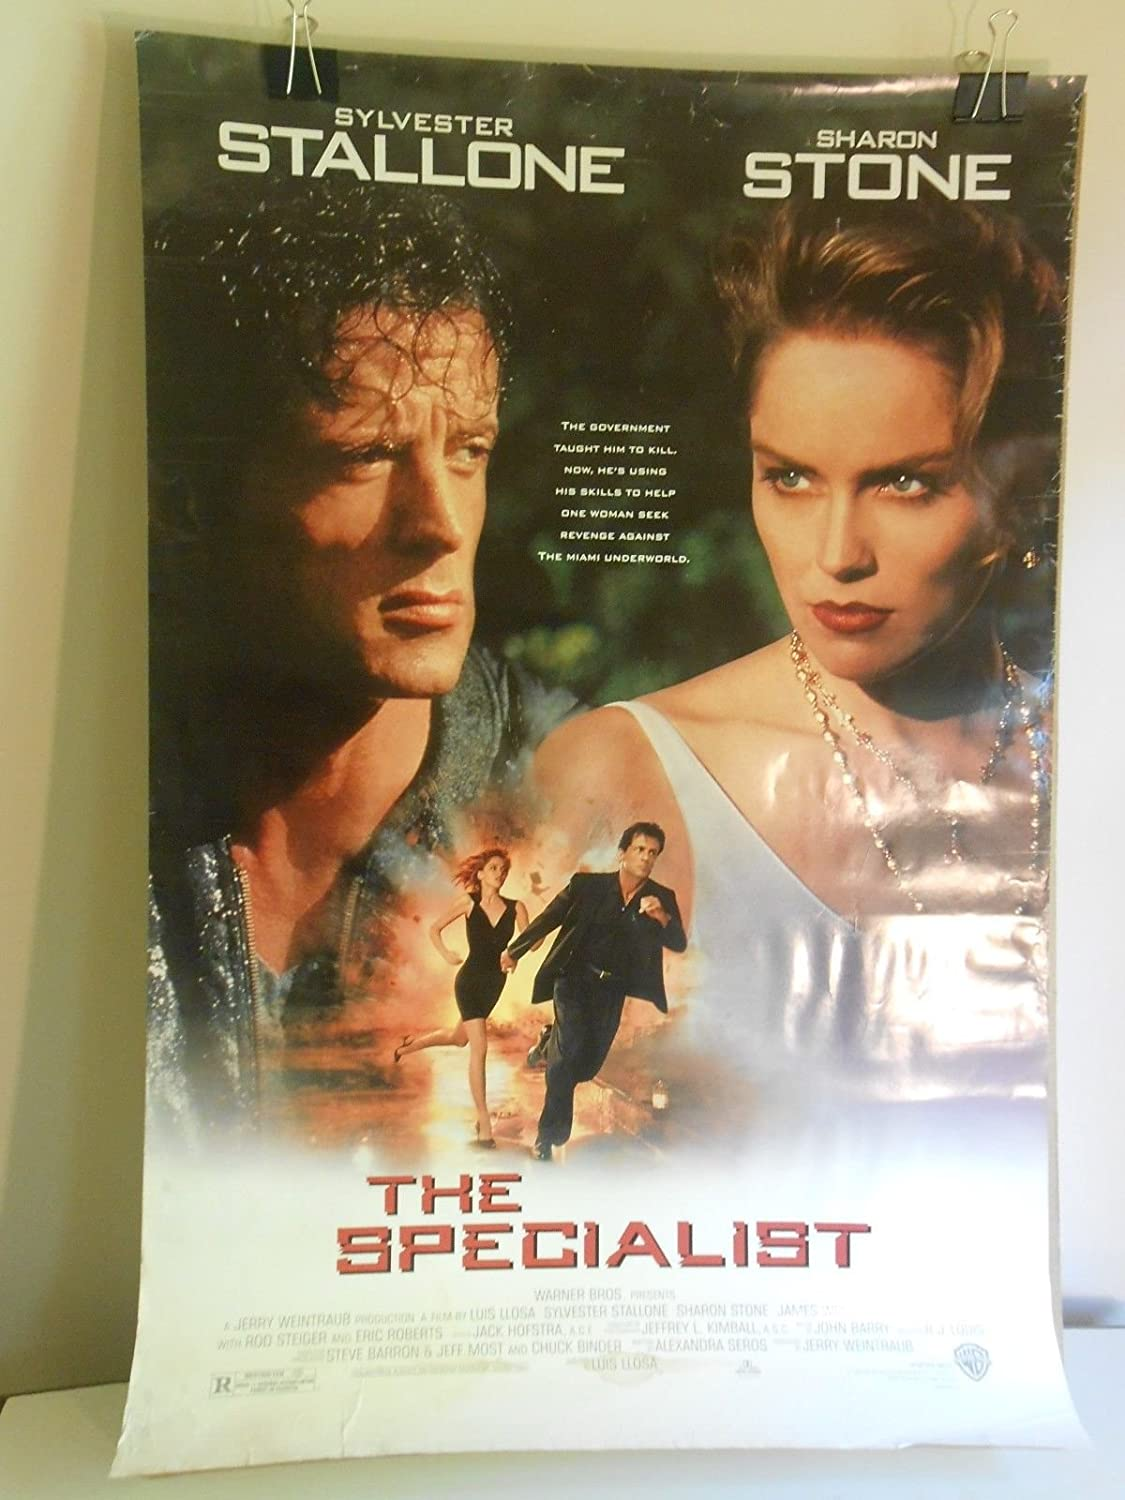 Amazon Com The Specialist 1994 Original 2 Sided Movie Poster Sharon Stone Stallone 27x40 Posters Prints